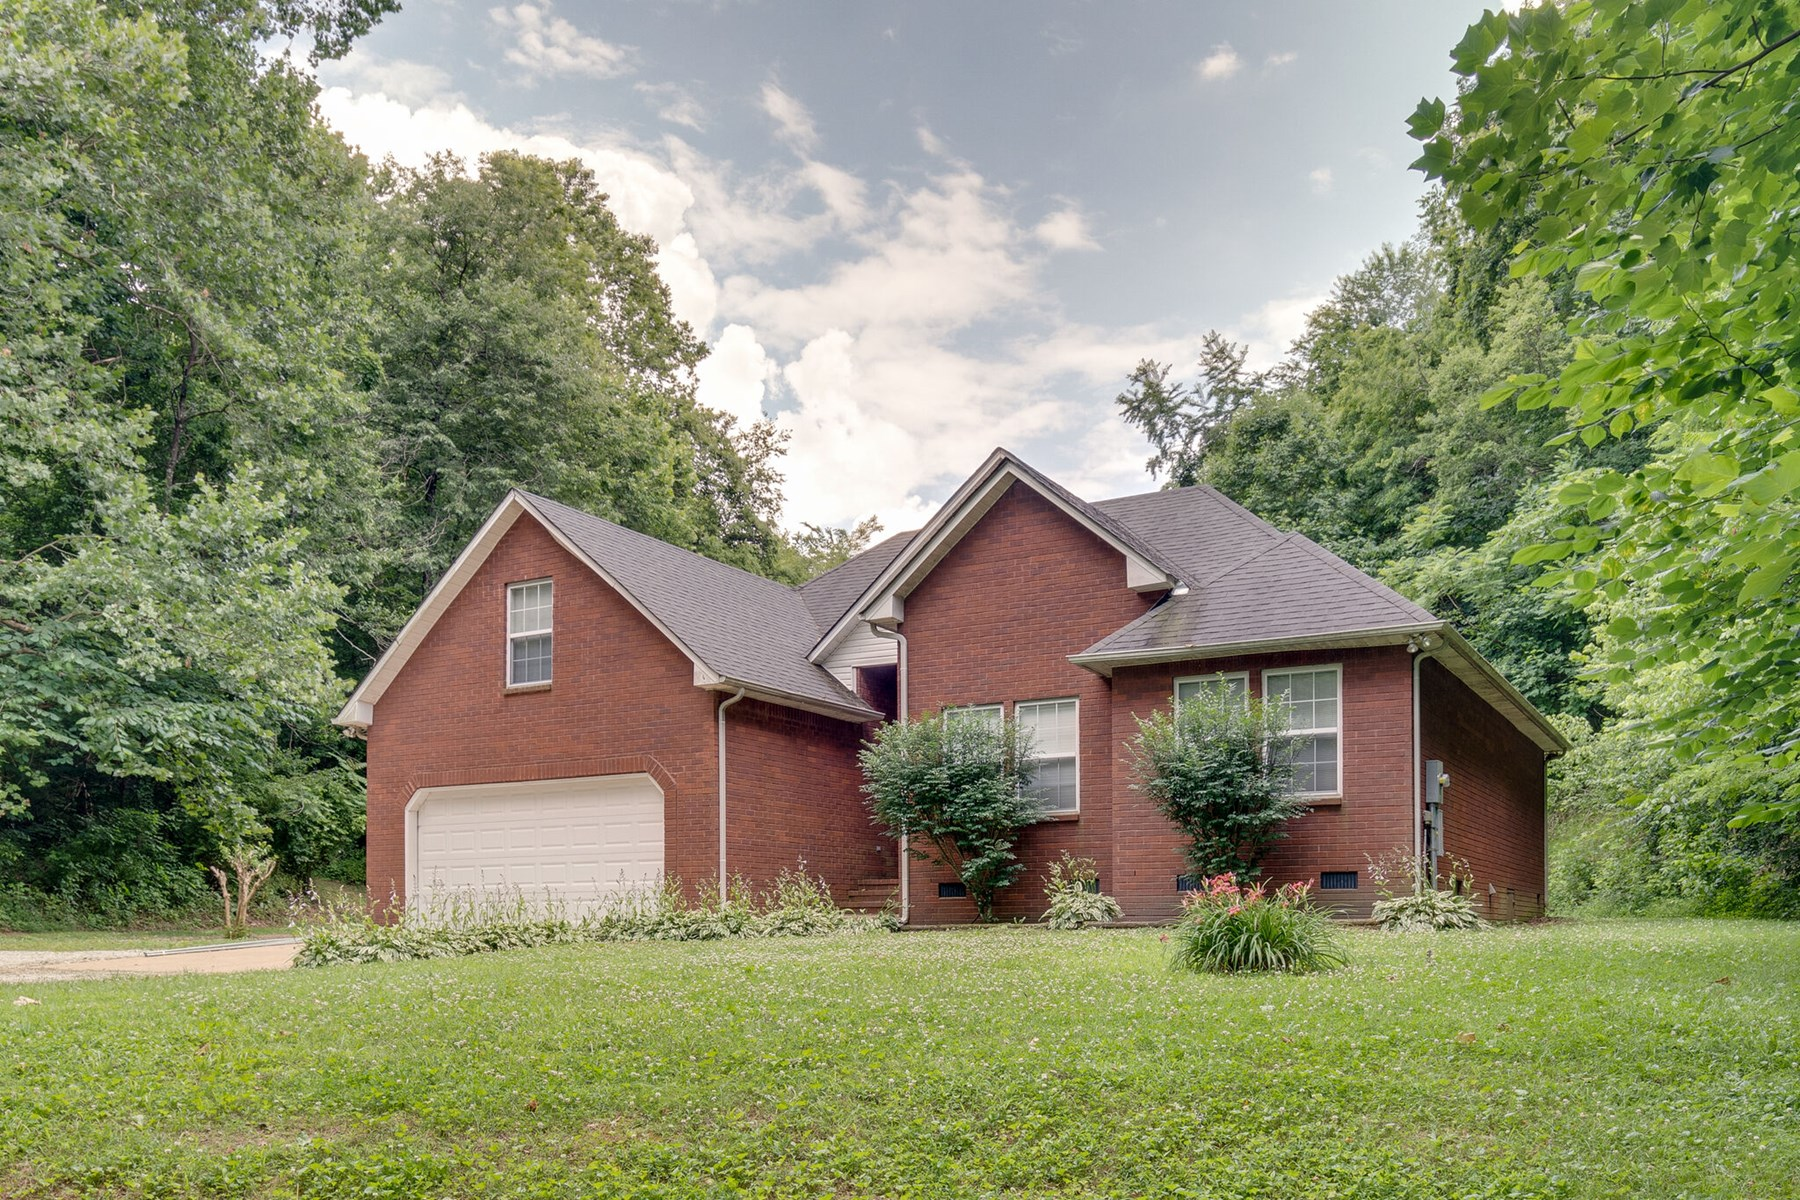 All Brick Home for Sale with Acreage, in Culleoka, Tennessee